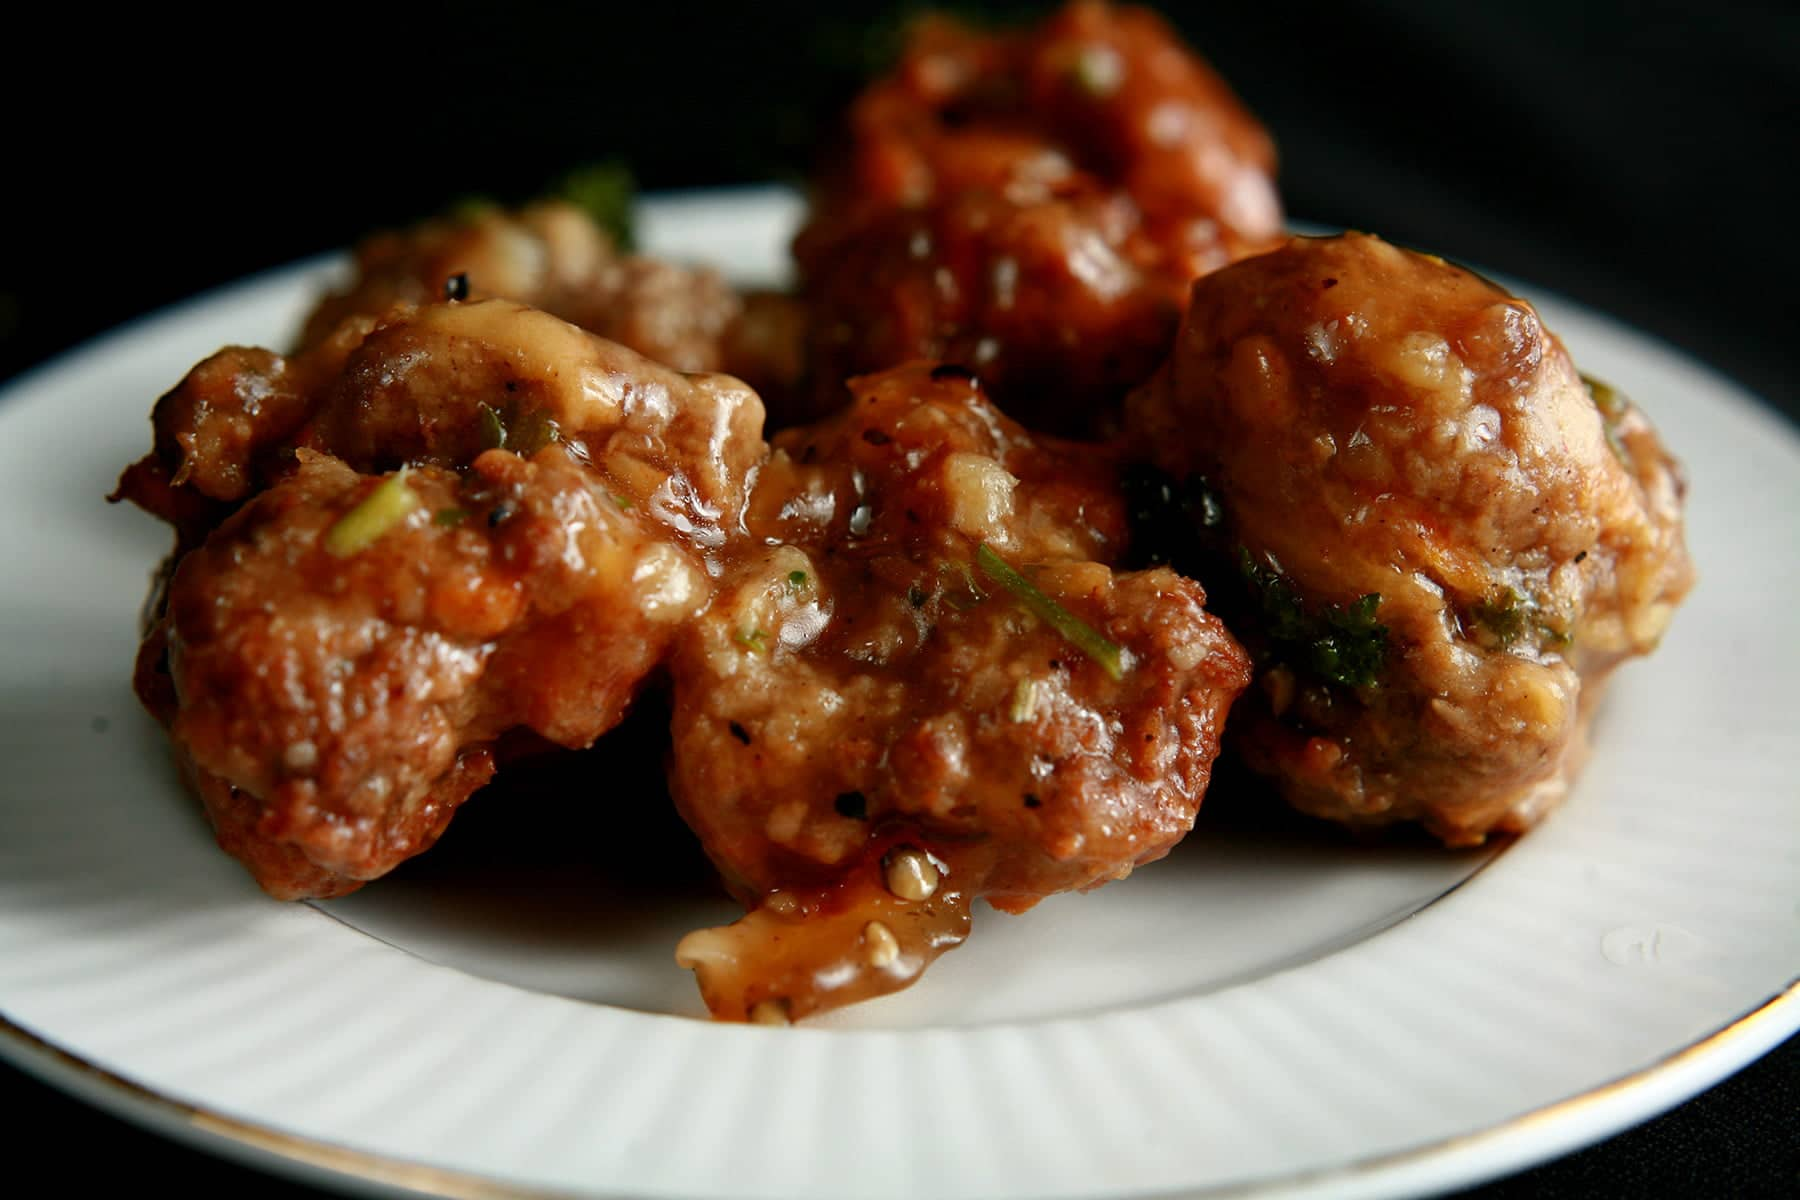 Several Gluten-Free Irish Stew Meatballs are served on a small white plate. The meatballs show flecks of orange and green throughout.